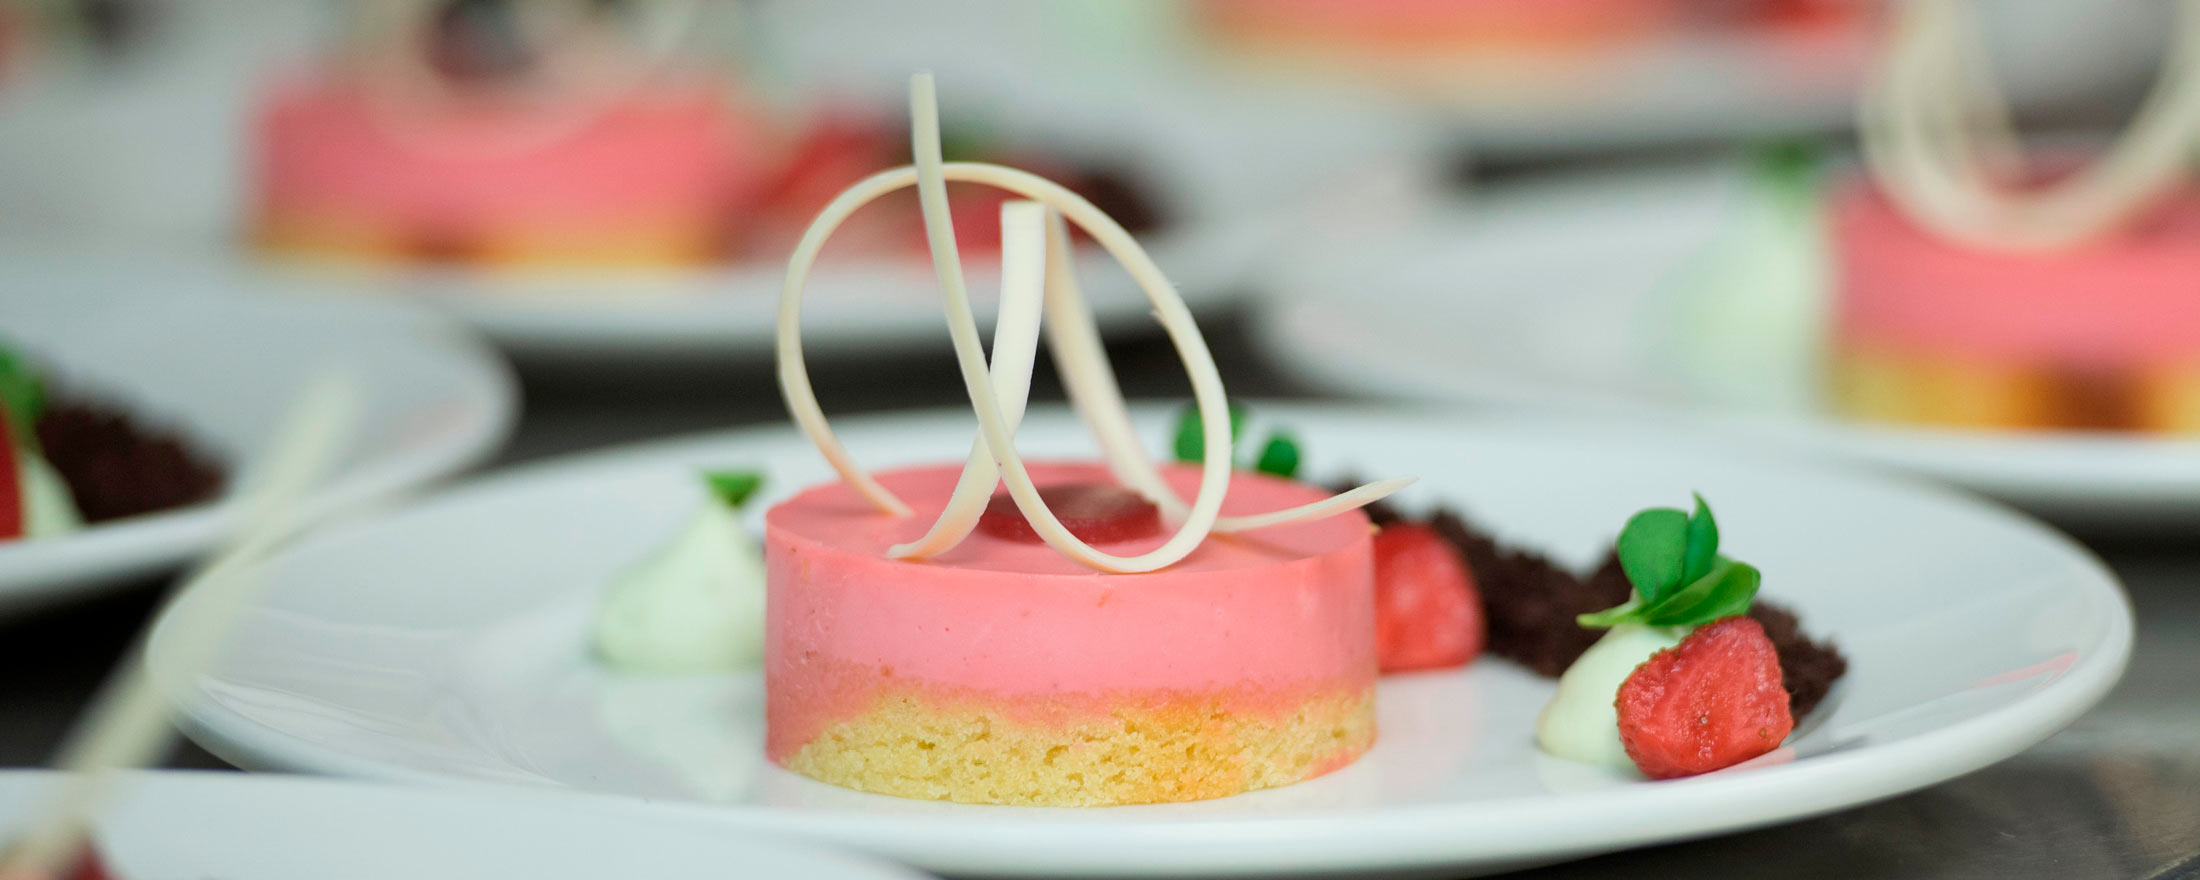 Photo of a strawberry sorbet on top of a shortbread cake.